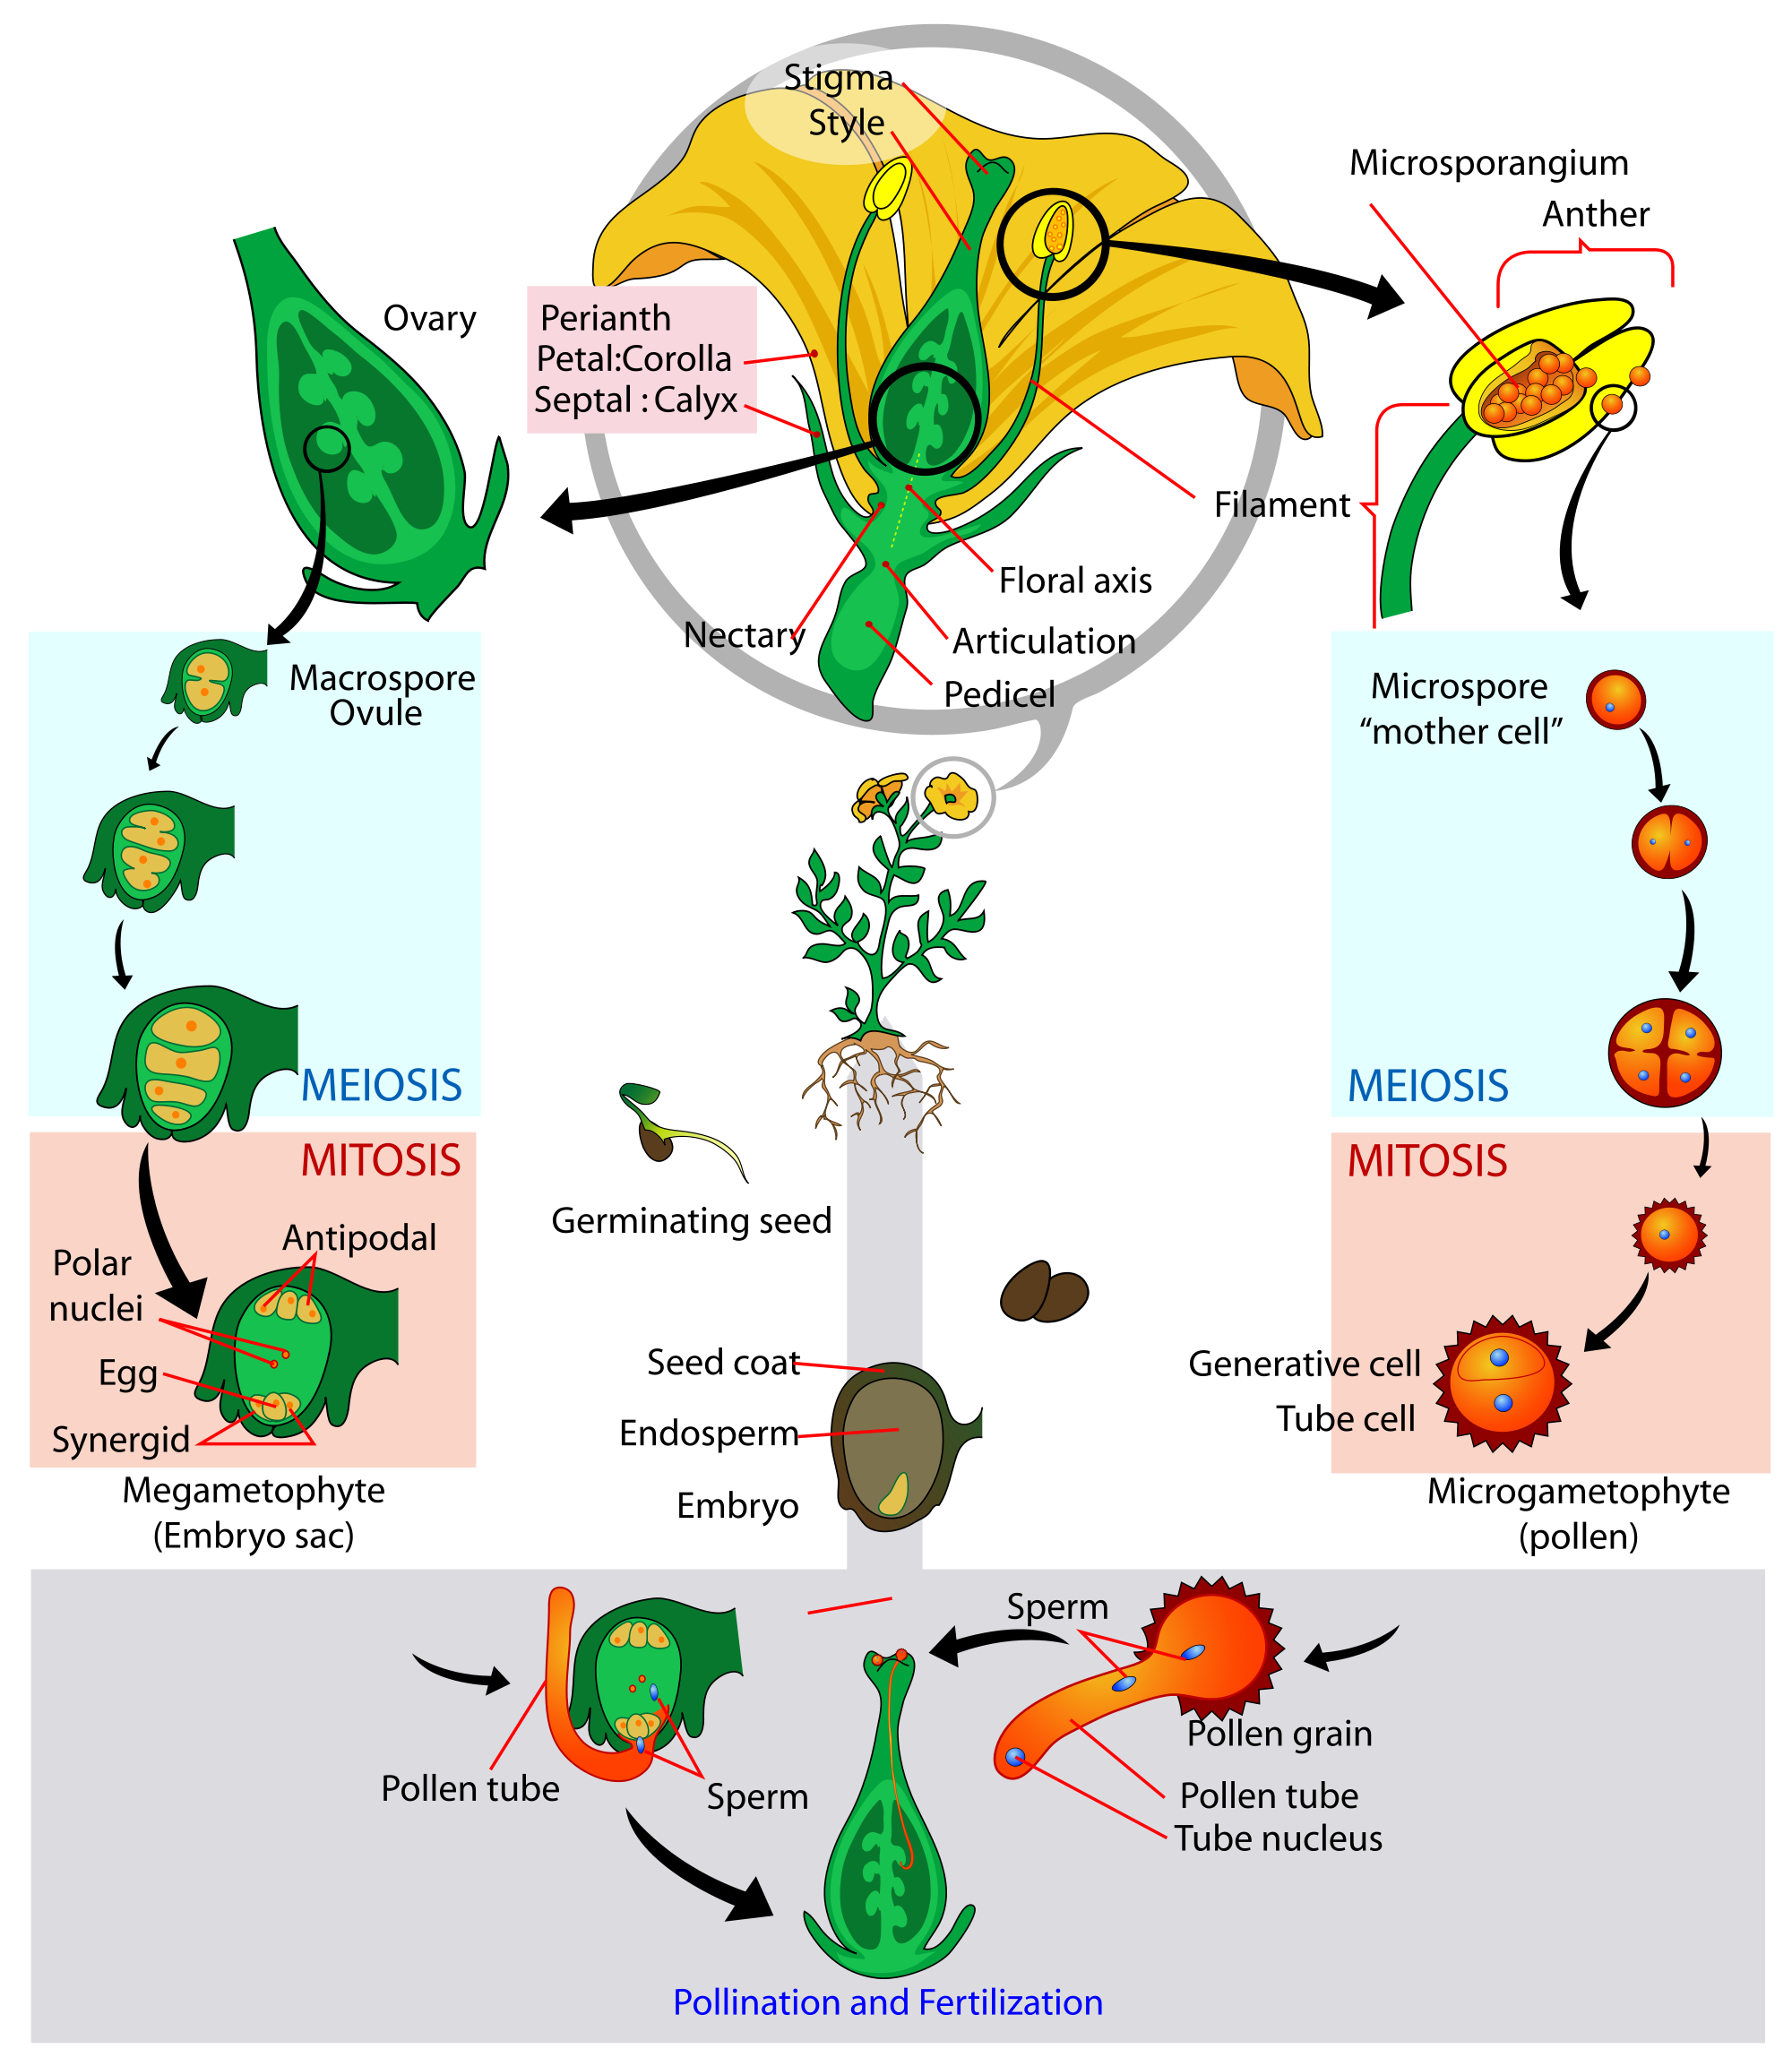 Flower life cycle clipart picture freeuse download Angiosperm [ Flowering Plant] Life- Cycle Diagram | Bio-Sciences ... picture freeuse download